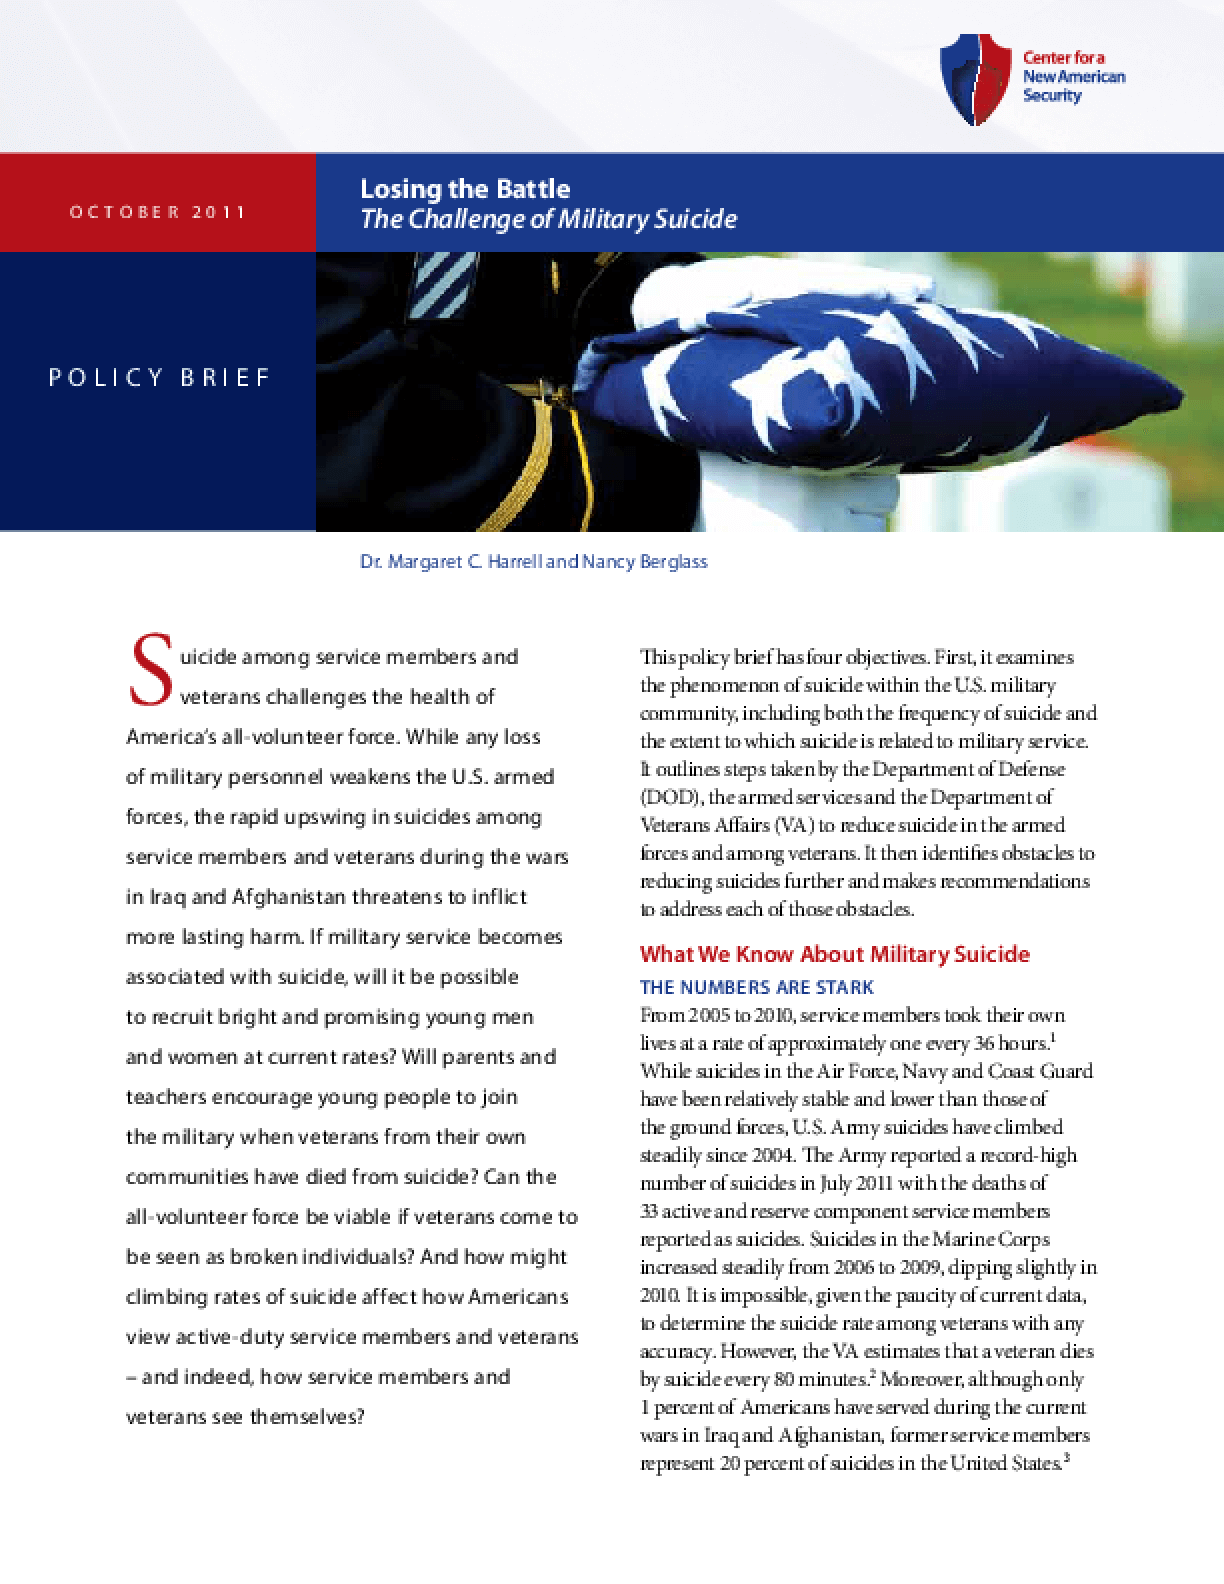 Losing the Battle: The Challenges of Military Suicide